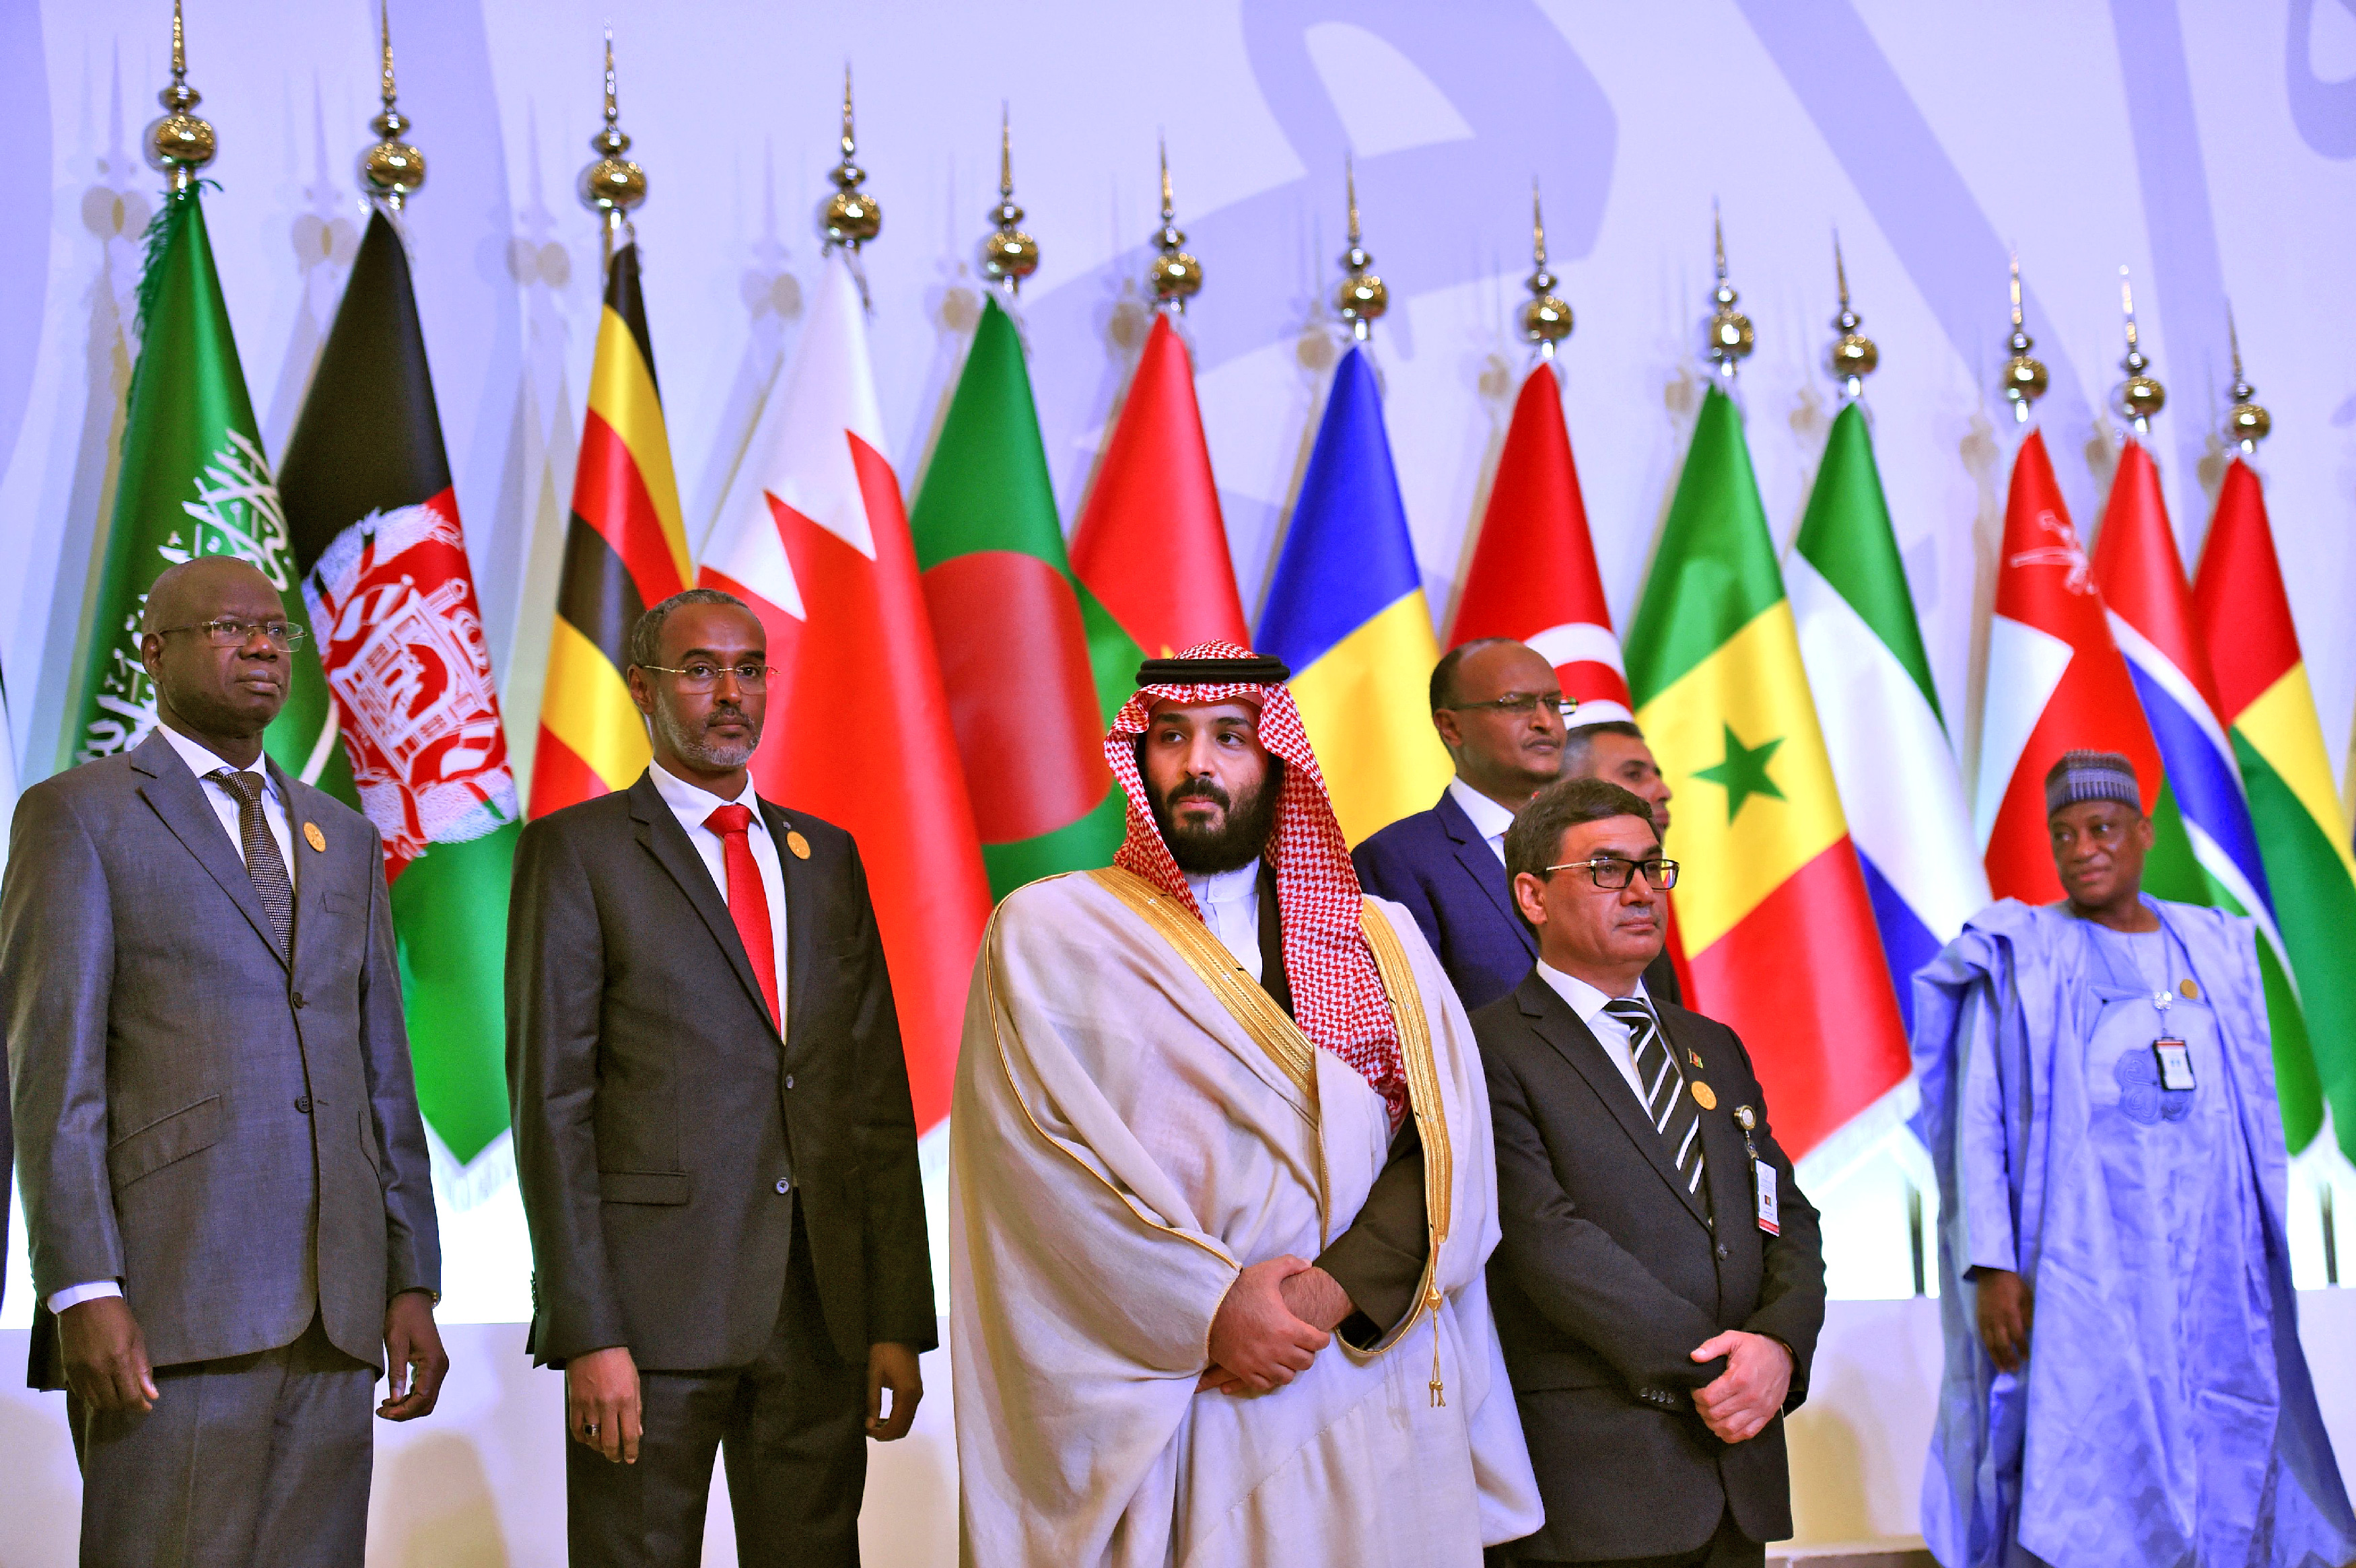 Saudi Crown Prince and Defence Minister Mohammed bin Salman (C) poses for a group picture with other defence ministers and officials of the 41-member Saudi-led Muslim counter-terrorism alliance on November 26, 2017 in the capital Riyadh, including Jordan's Chairman of the Joint Chiefs of Staff Lieutenant General Mahmoud Freihat (L) and Afghanistan's acting Defence Minister Major General Tariq Shah Bahrami (R). This is the first official meeting of the 41-member Islamic Military Counter Terrorism Coalition, first formed in 2015 under the auspices of Prince Mohammed -- whose rapid ascent since his appointment as heir to the throne in June has shaken the regional political scene. / AFP PHOTO / Fayez Nureldine (Photo credit should read FAYEZ NURELDINE/AFP/Getty Images)